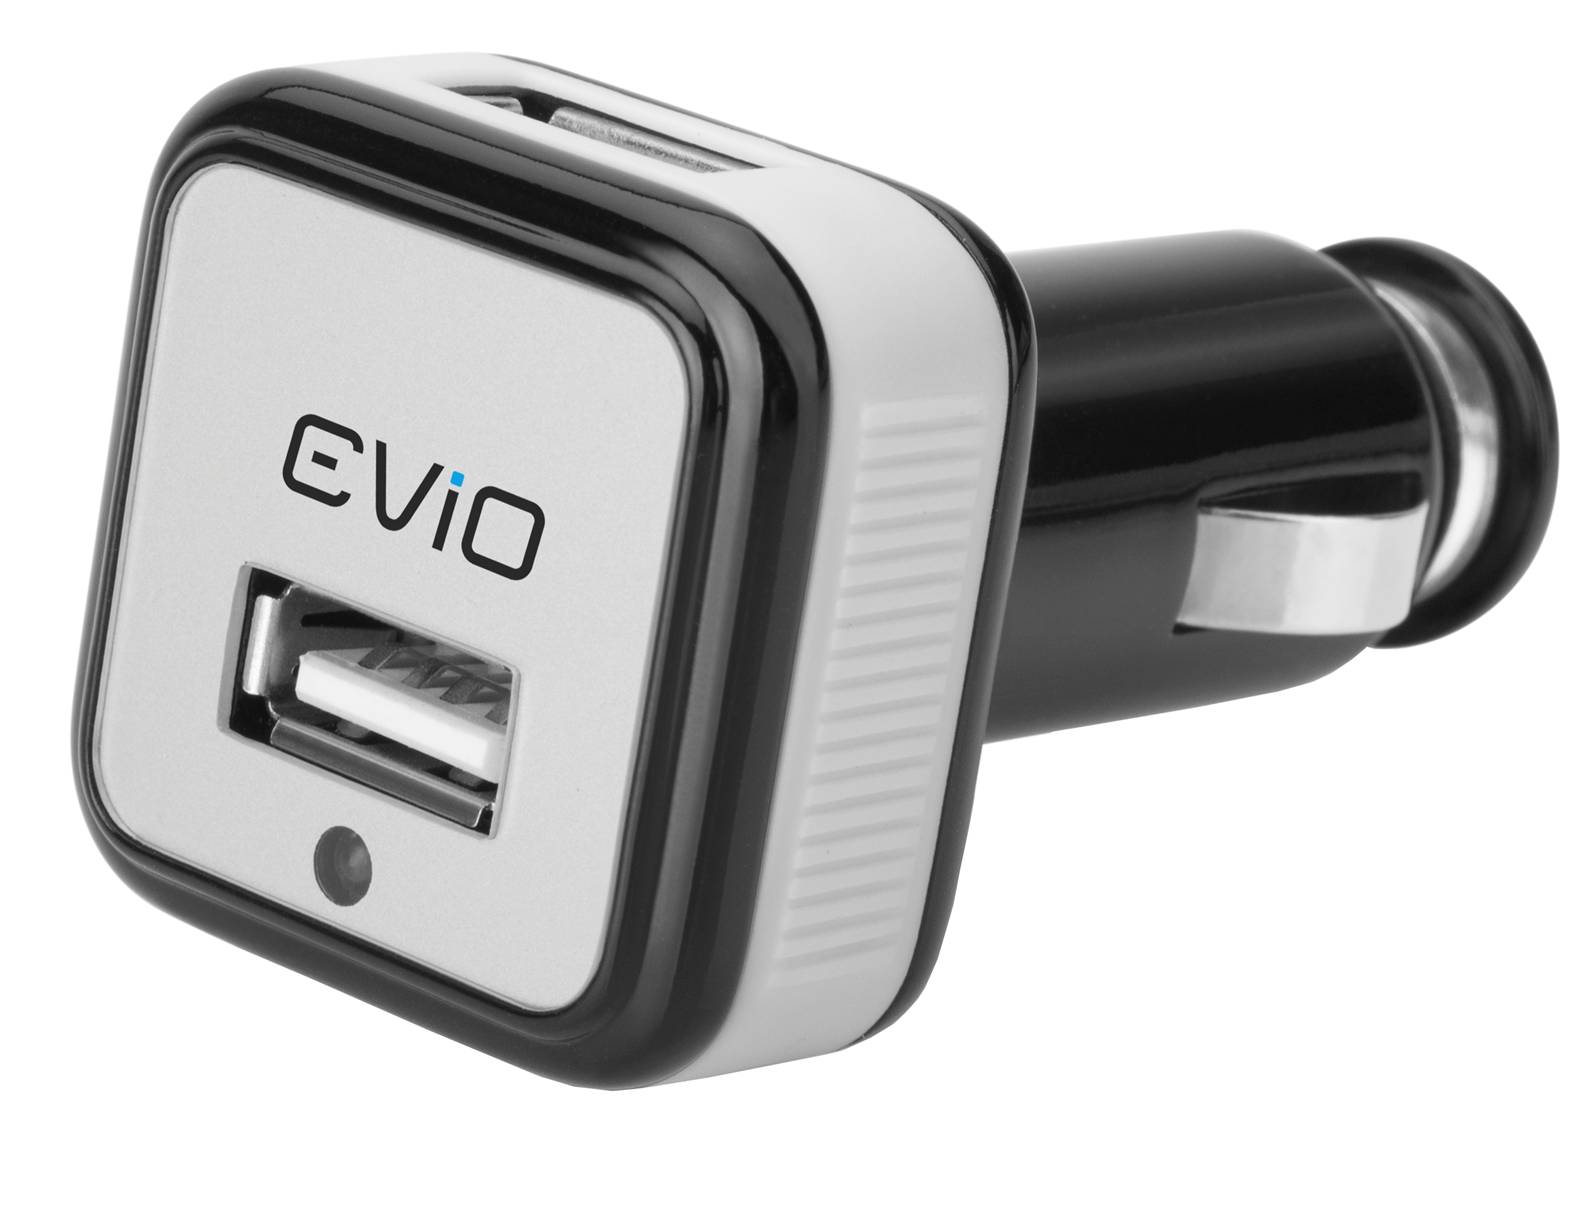 EVIO Car ChargePRO